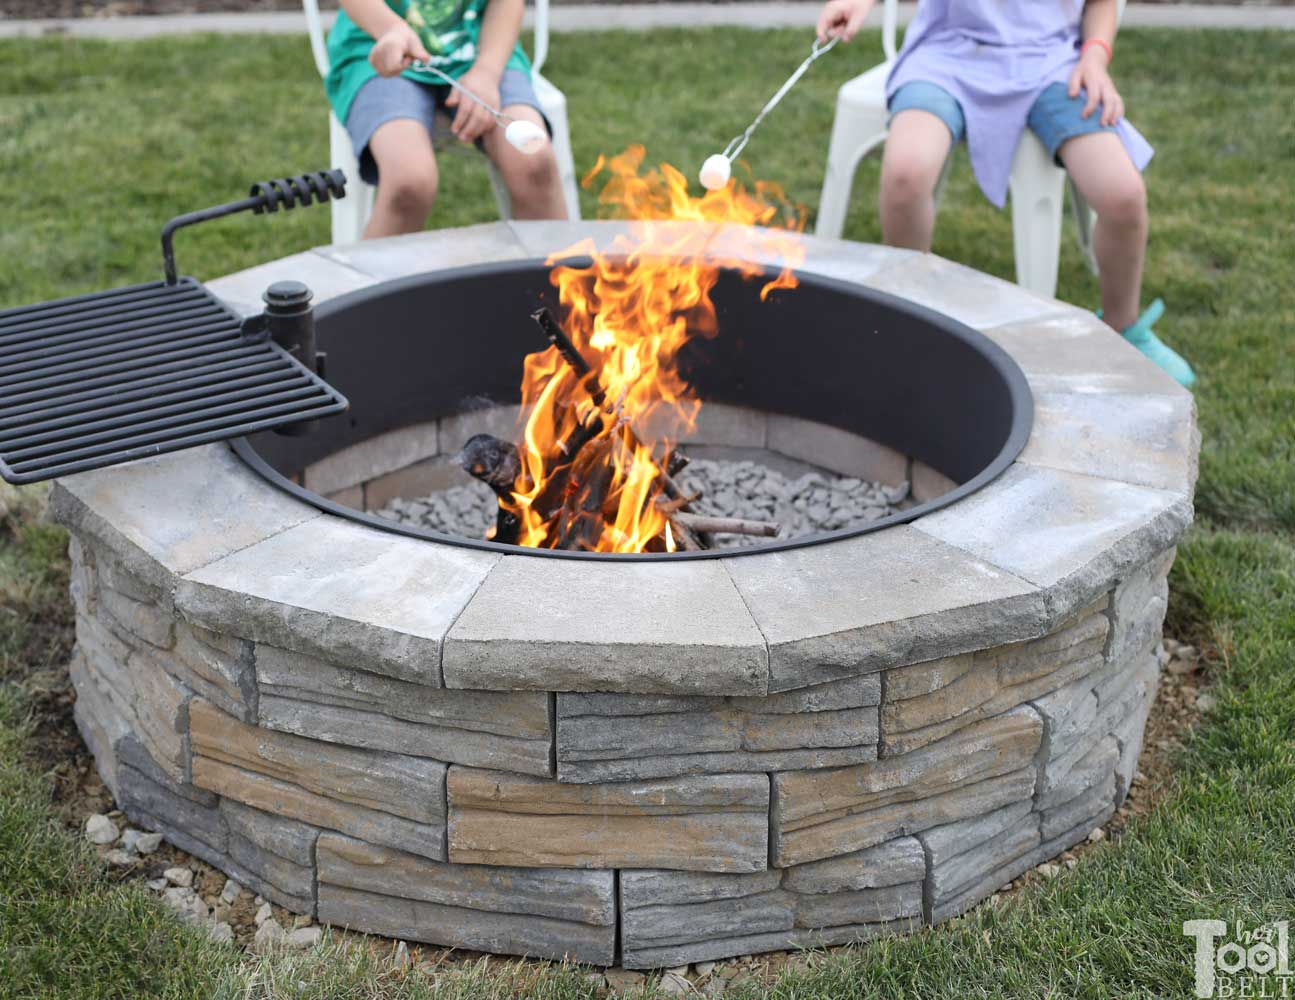 diy-backyard-fire-pit-roasting-marshmallows - Her Tool Belt